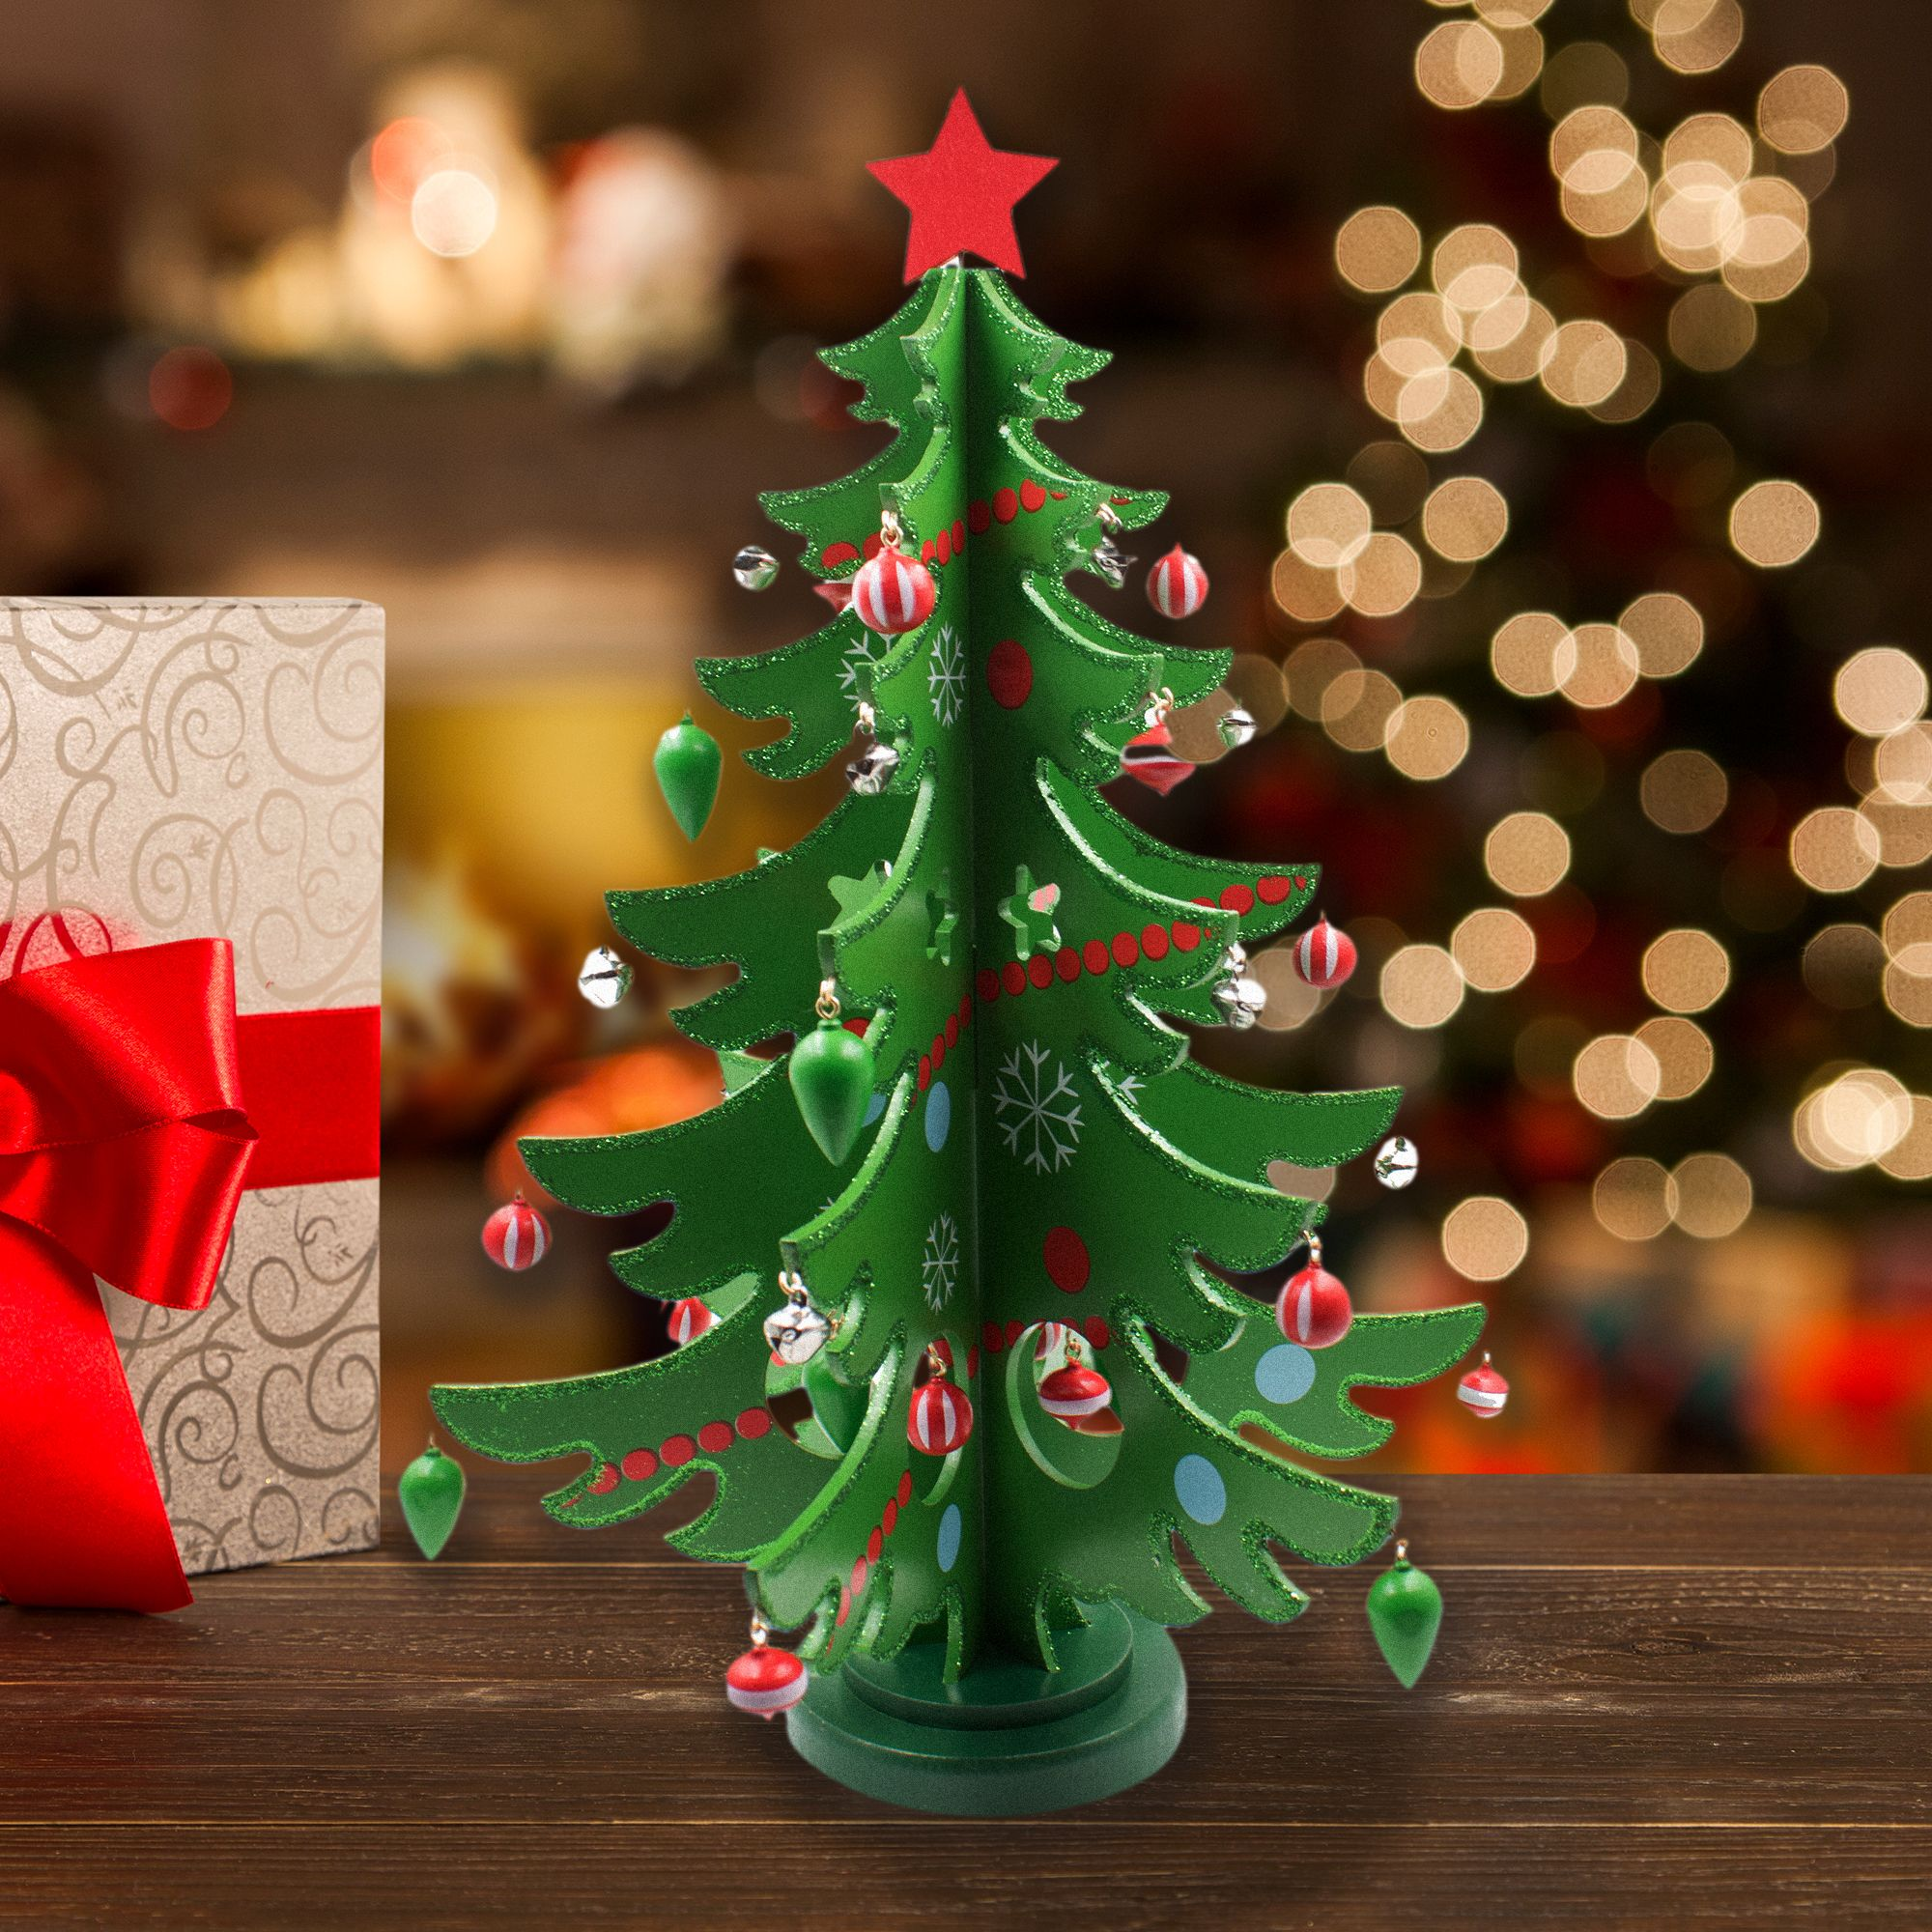 Cute Mini Wooden Tabletop Christmas Tree!